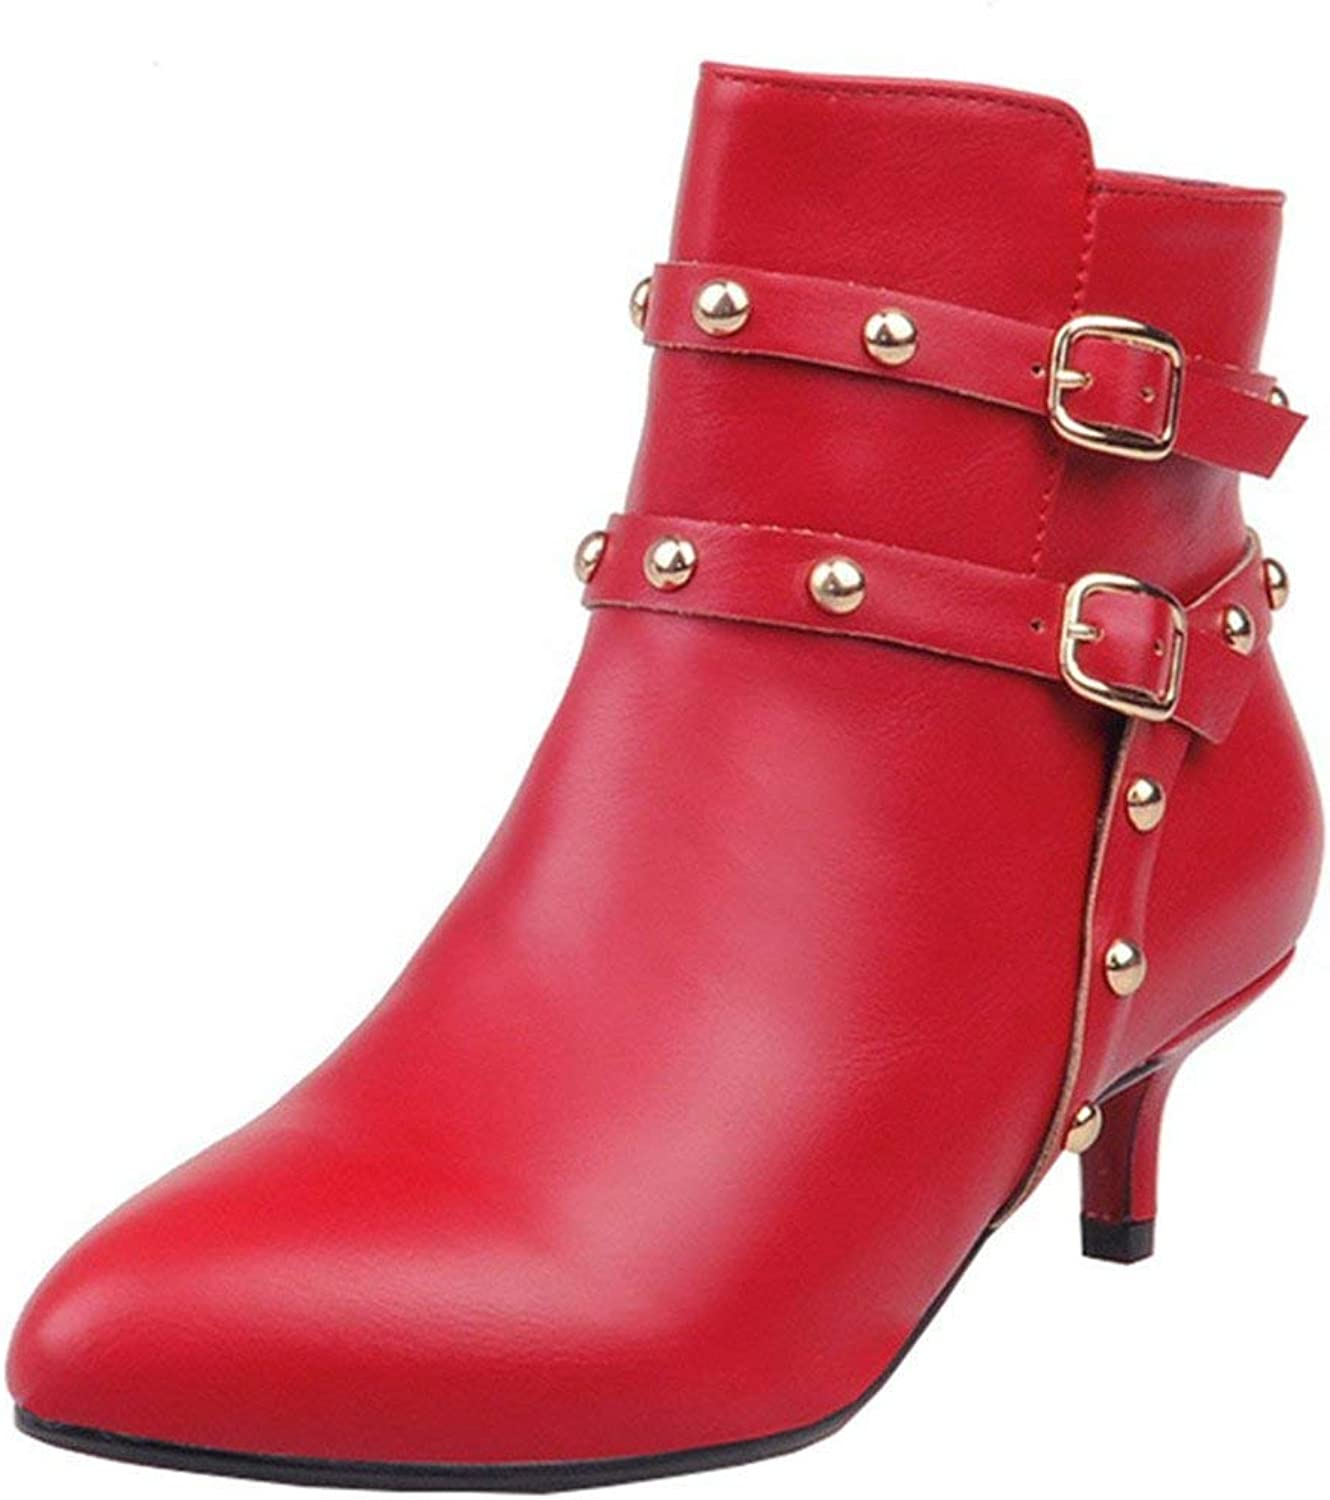 Vitalo Womens Kitten Heel Studded Buckle Ankle Boots Zip Pointed Toe Booties